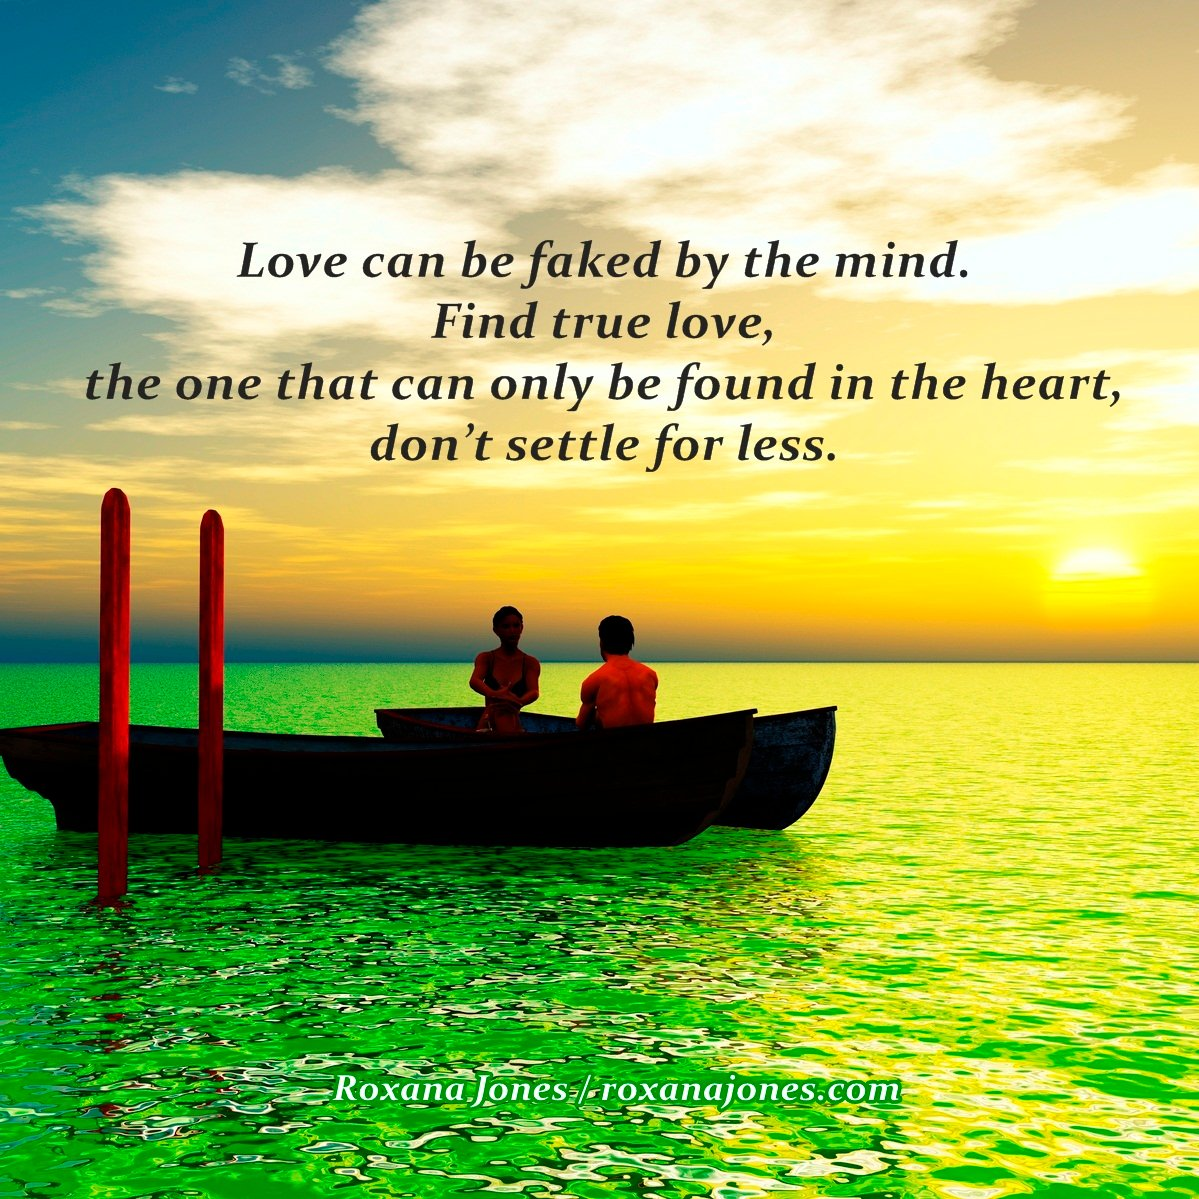 Motivational Quotes About Love: Inspiring Quotes Love Hearts. QuotesGram